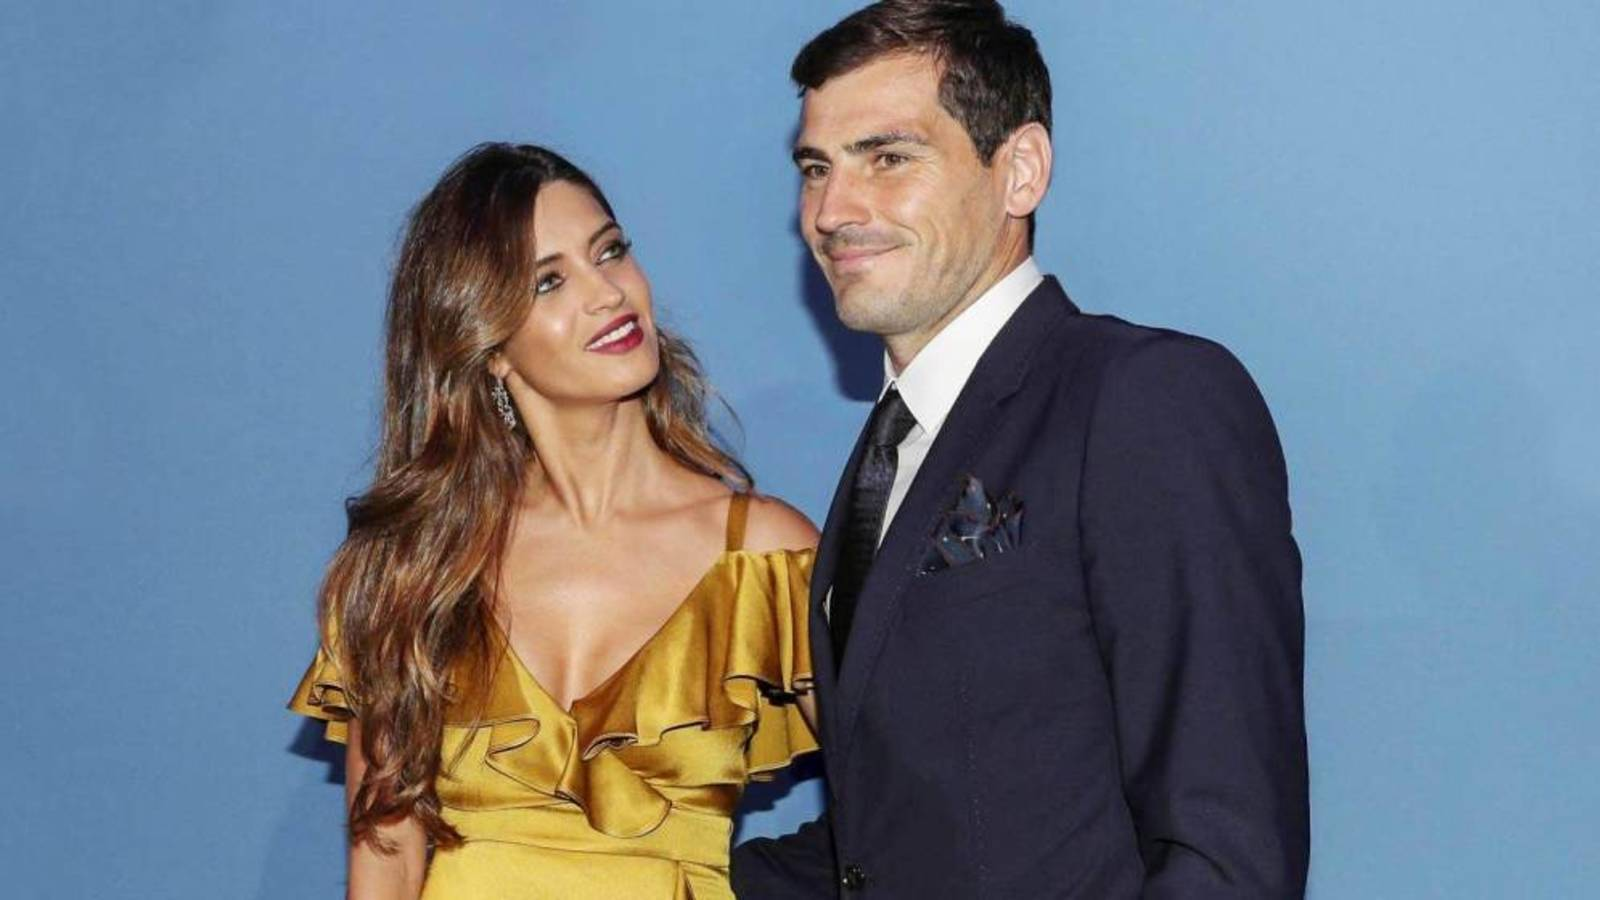 Iker Casillas rushed to a hospital just two years after the last scare